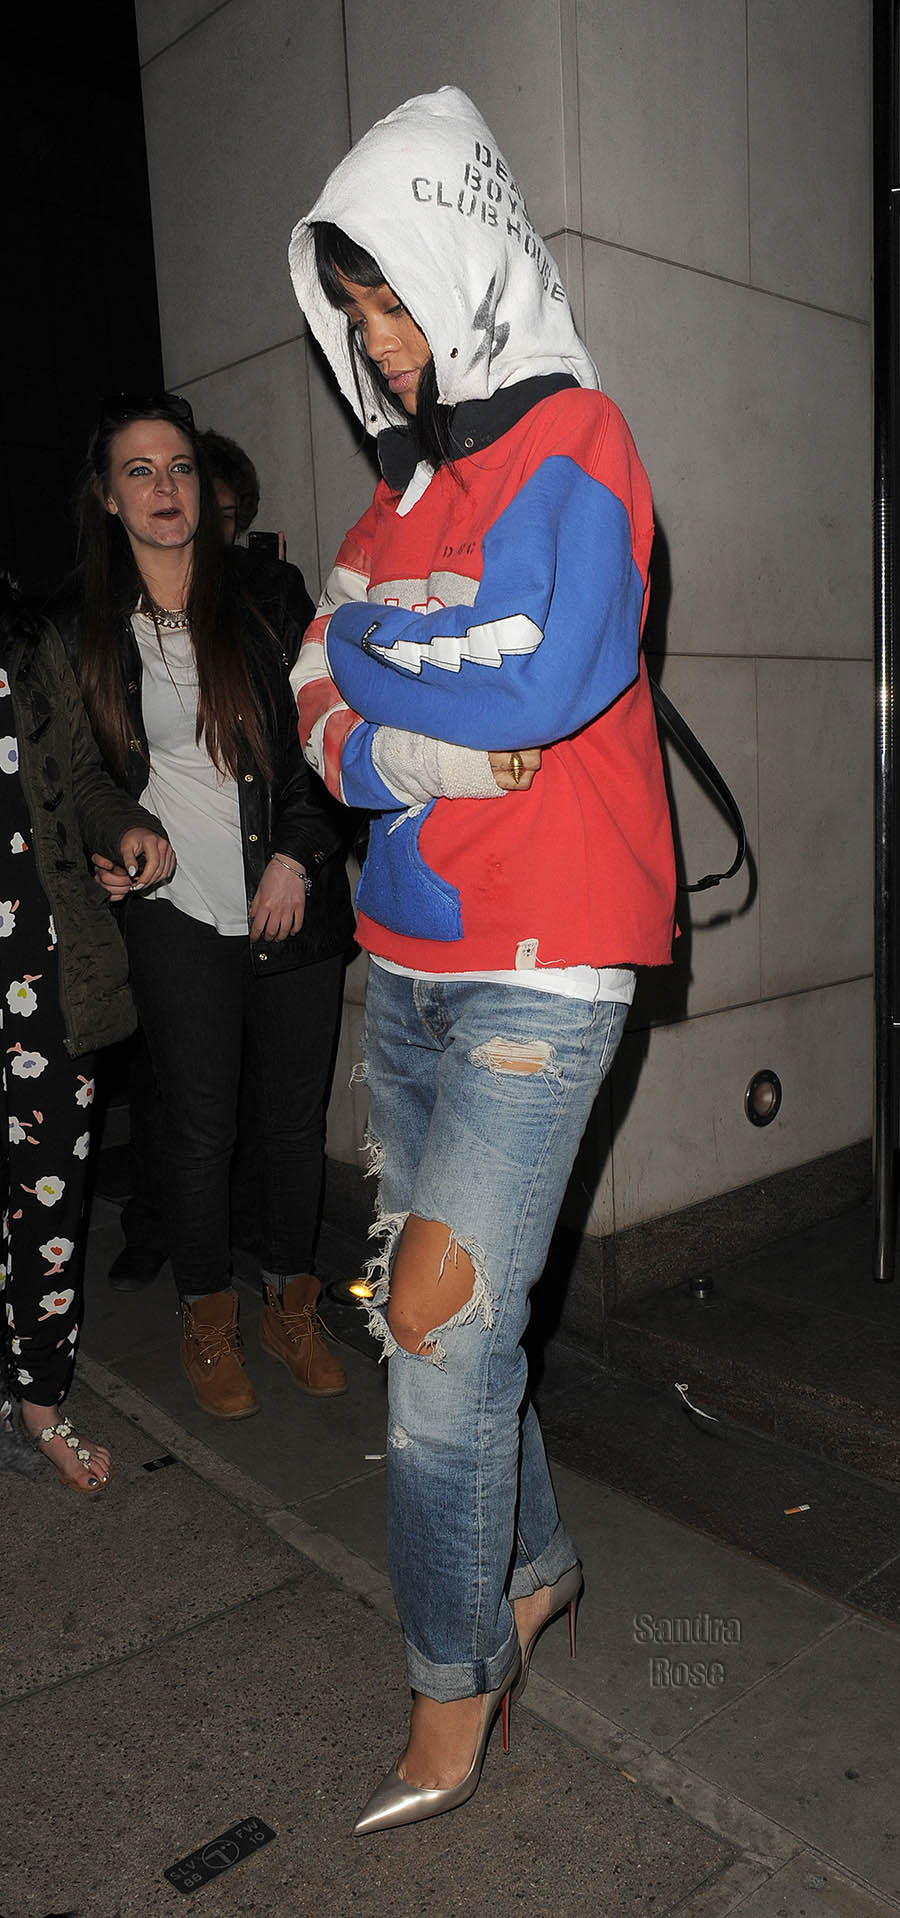 Drake and Rihanna leave Nobu restaurant on Park Lane, 30 seconds apart, having dined there together